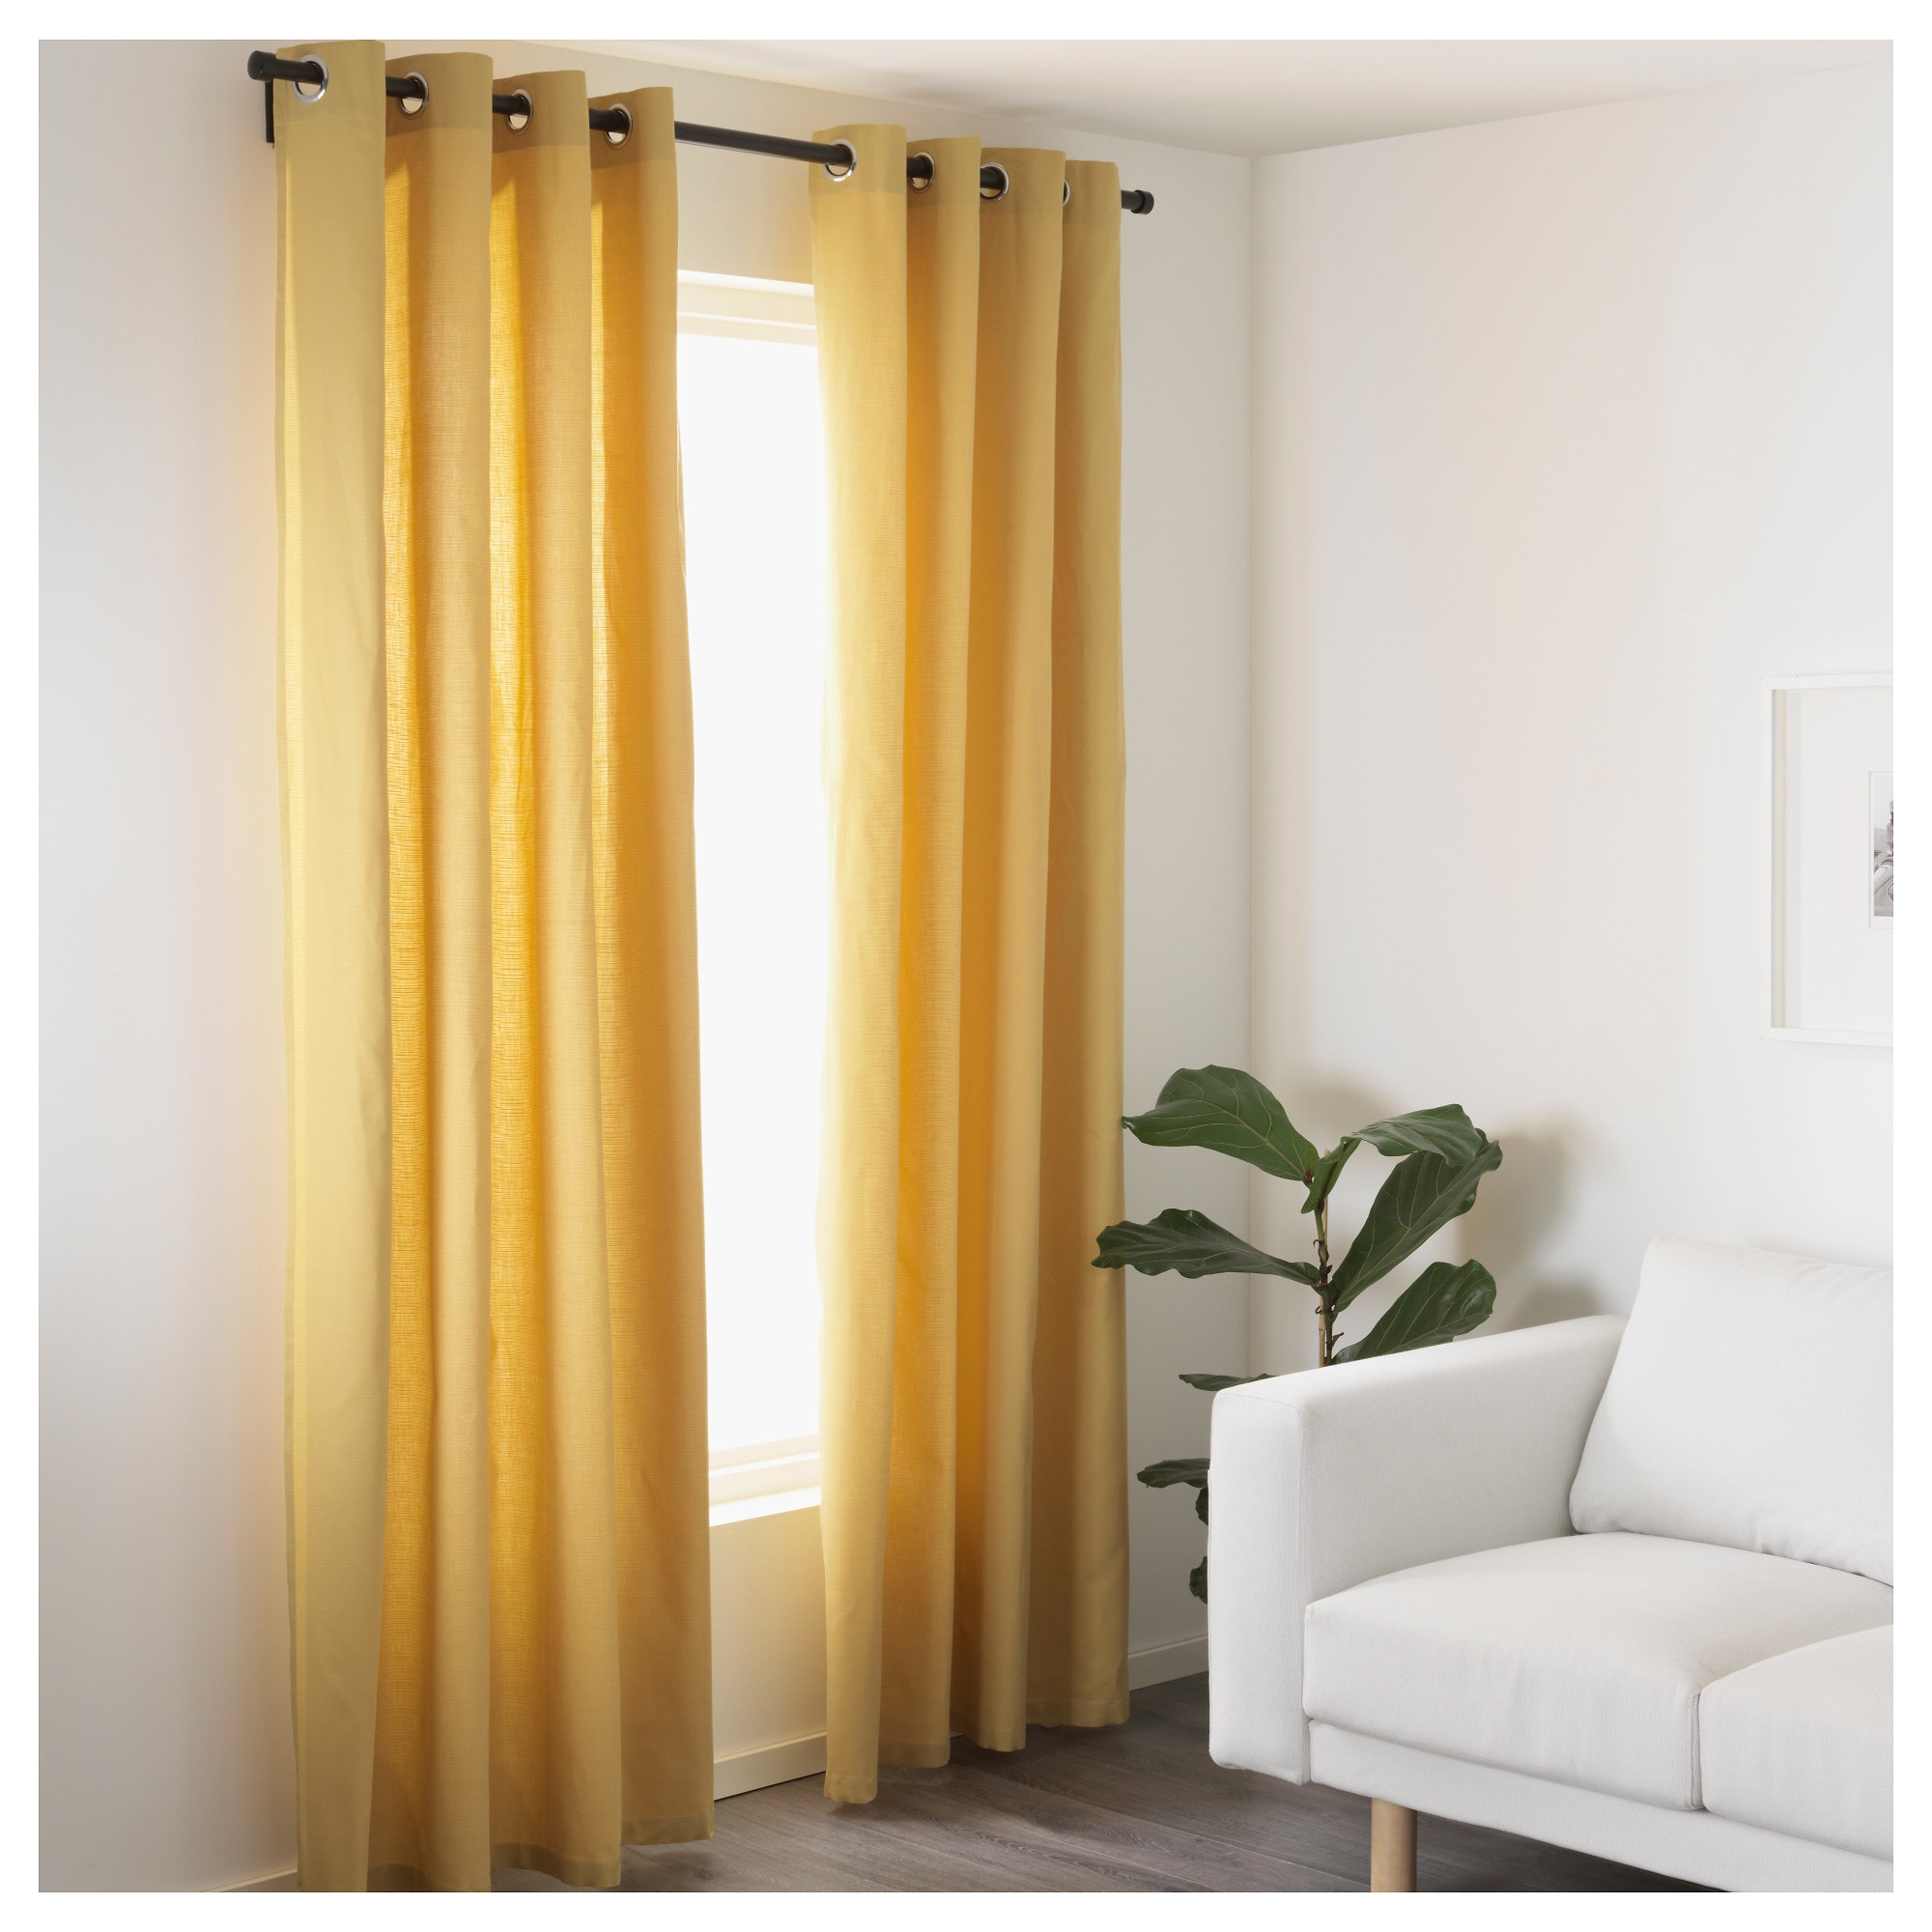 Yellow Curtains ikea mariam curtains, 1 pair BSXRAXF